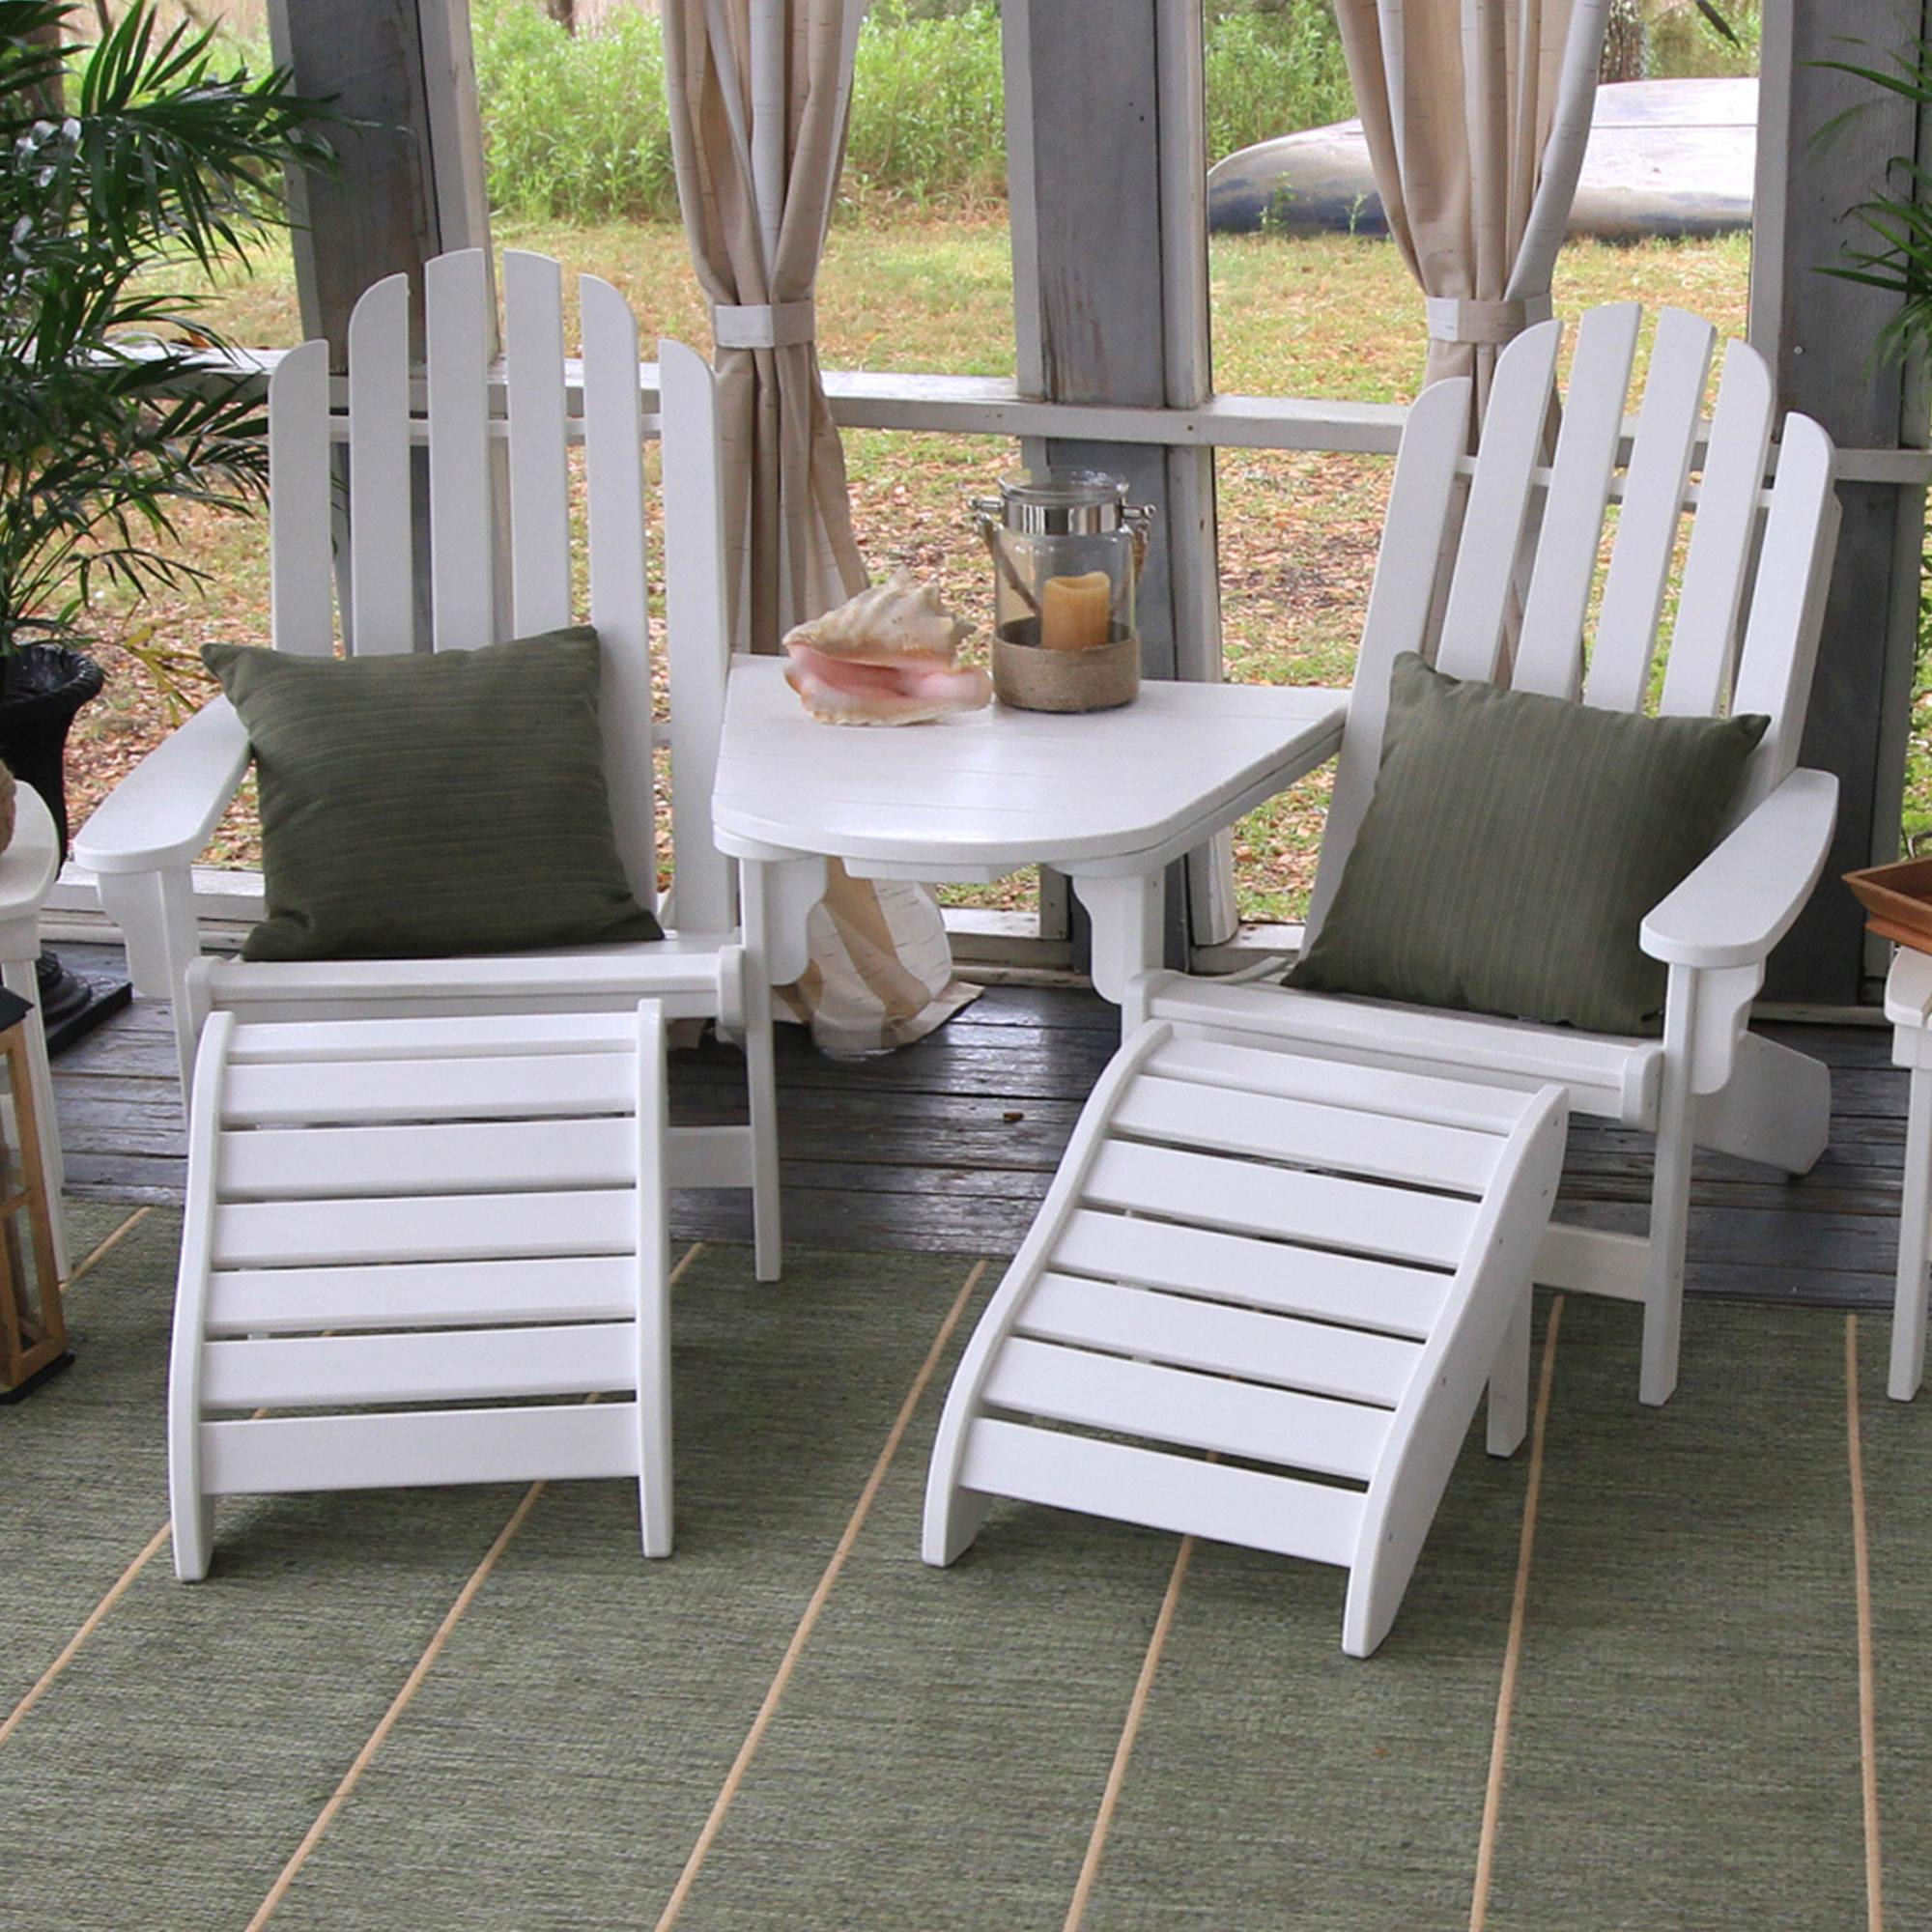 adirondack chairs on sale thermarest chair kit shop for a tete table